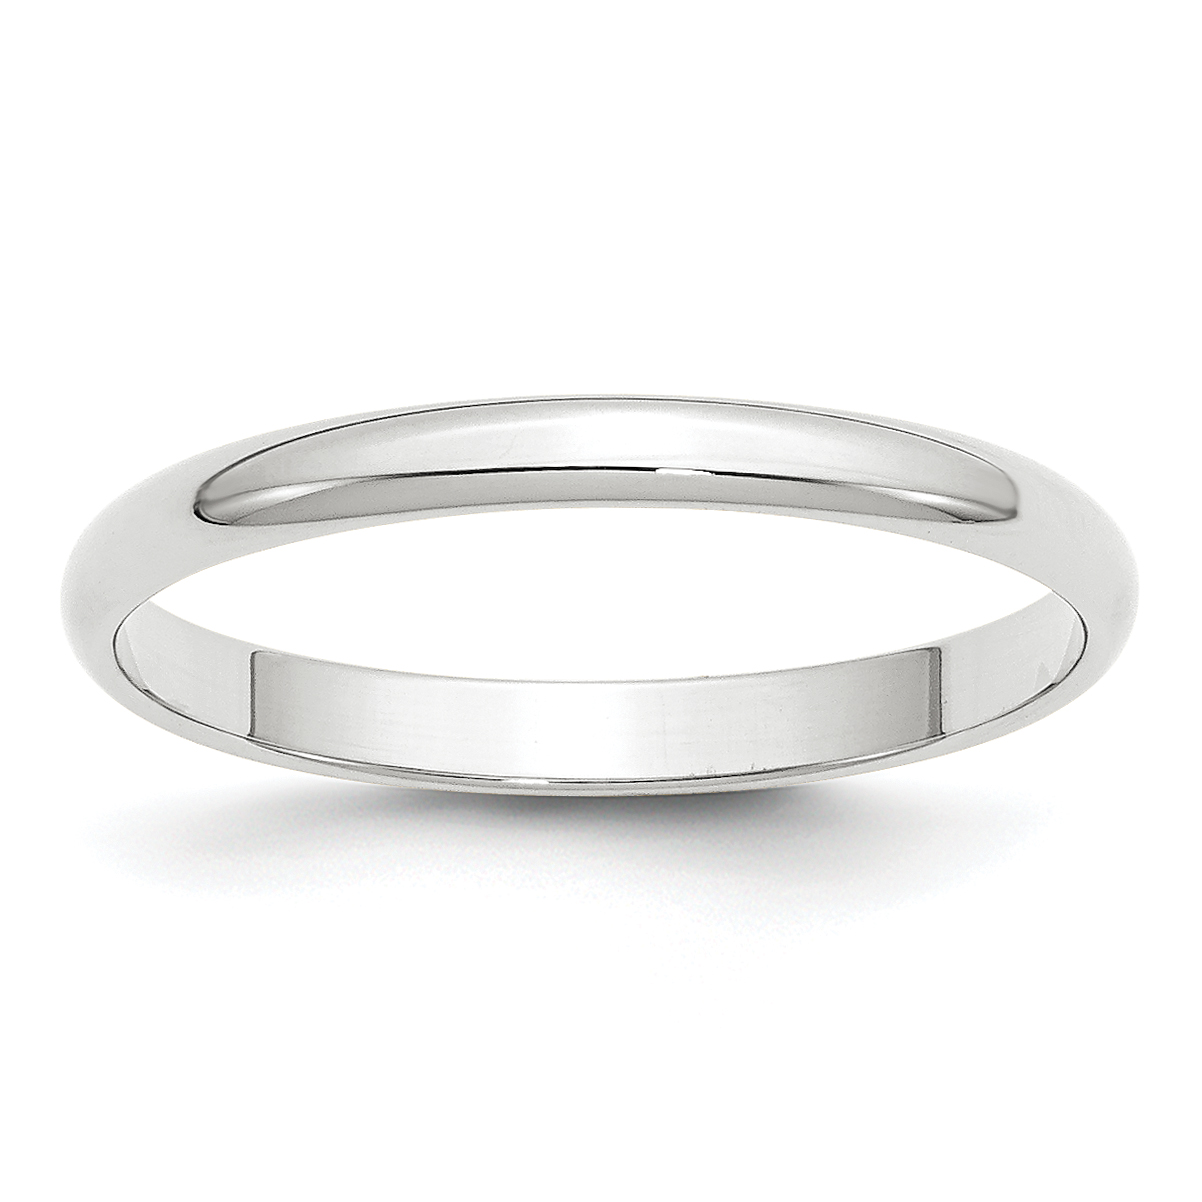 14K White Gold 2.5mm Light Weight Half Round Band Size 4.5 - image 3 of 3